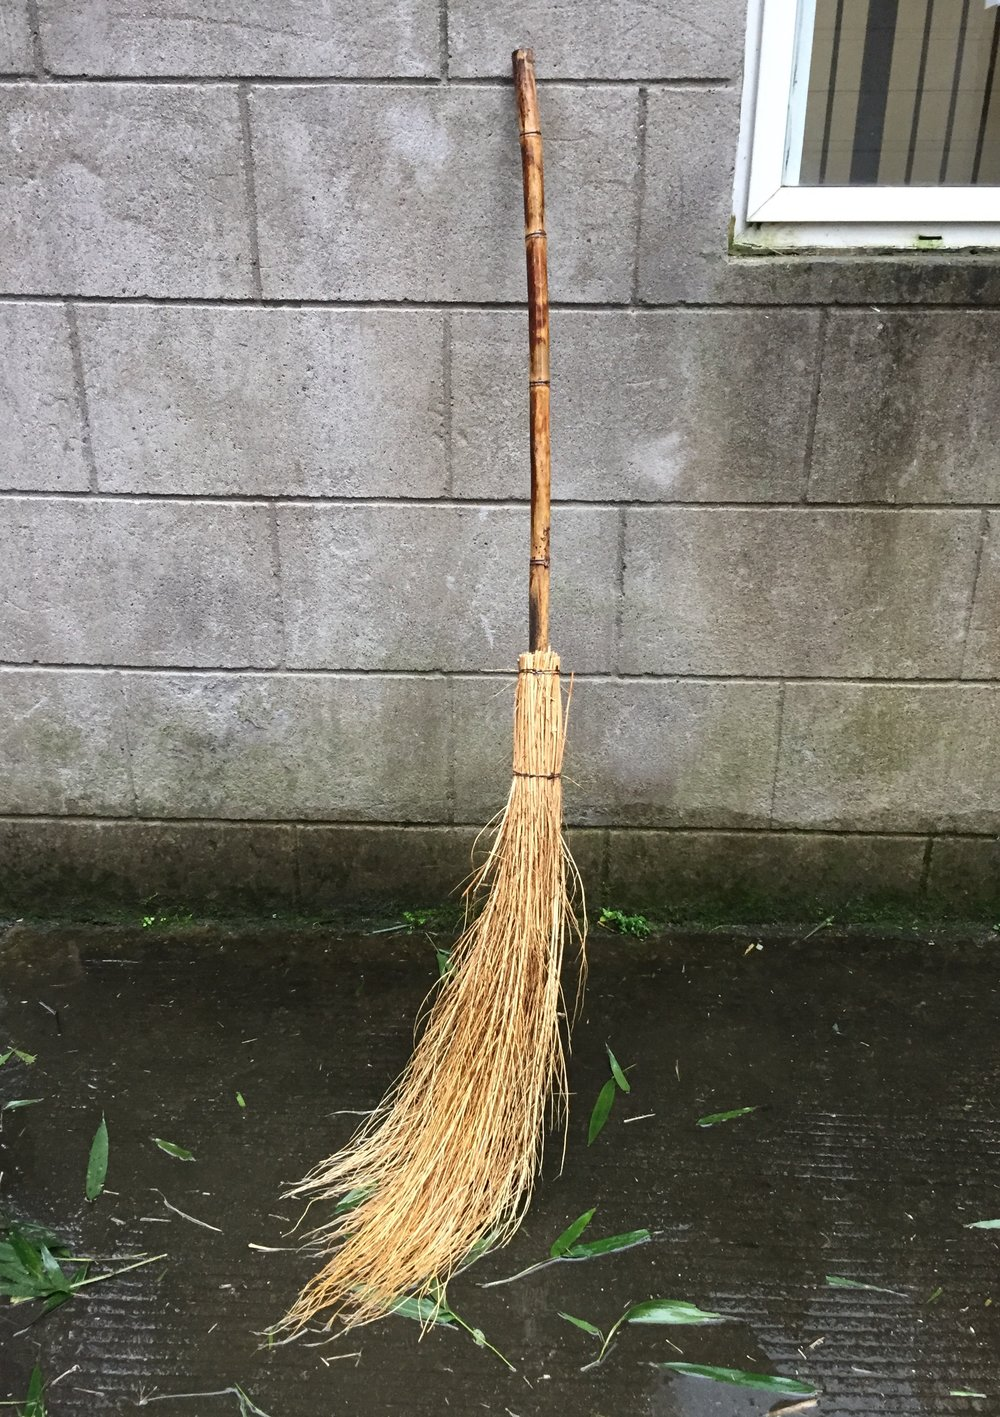 An authentic witches broom, jk.